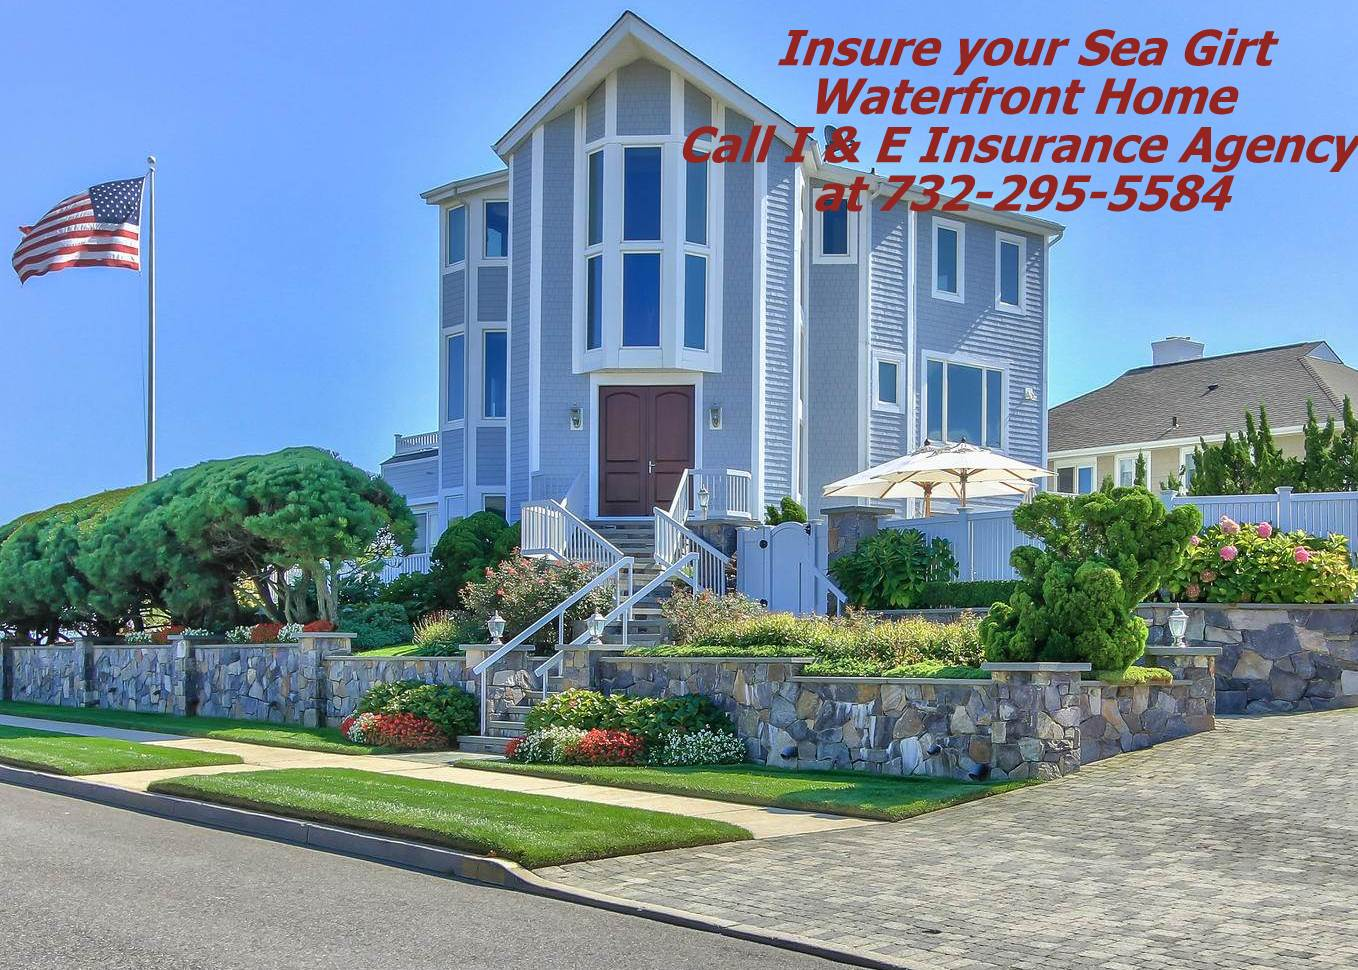 Sea Girt NJ 08750 Homeowners Insurance Affluent High Value Home Waterfront Property